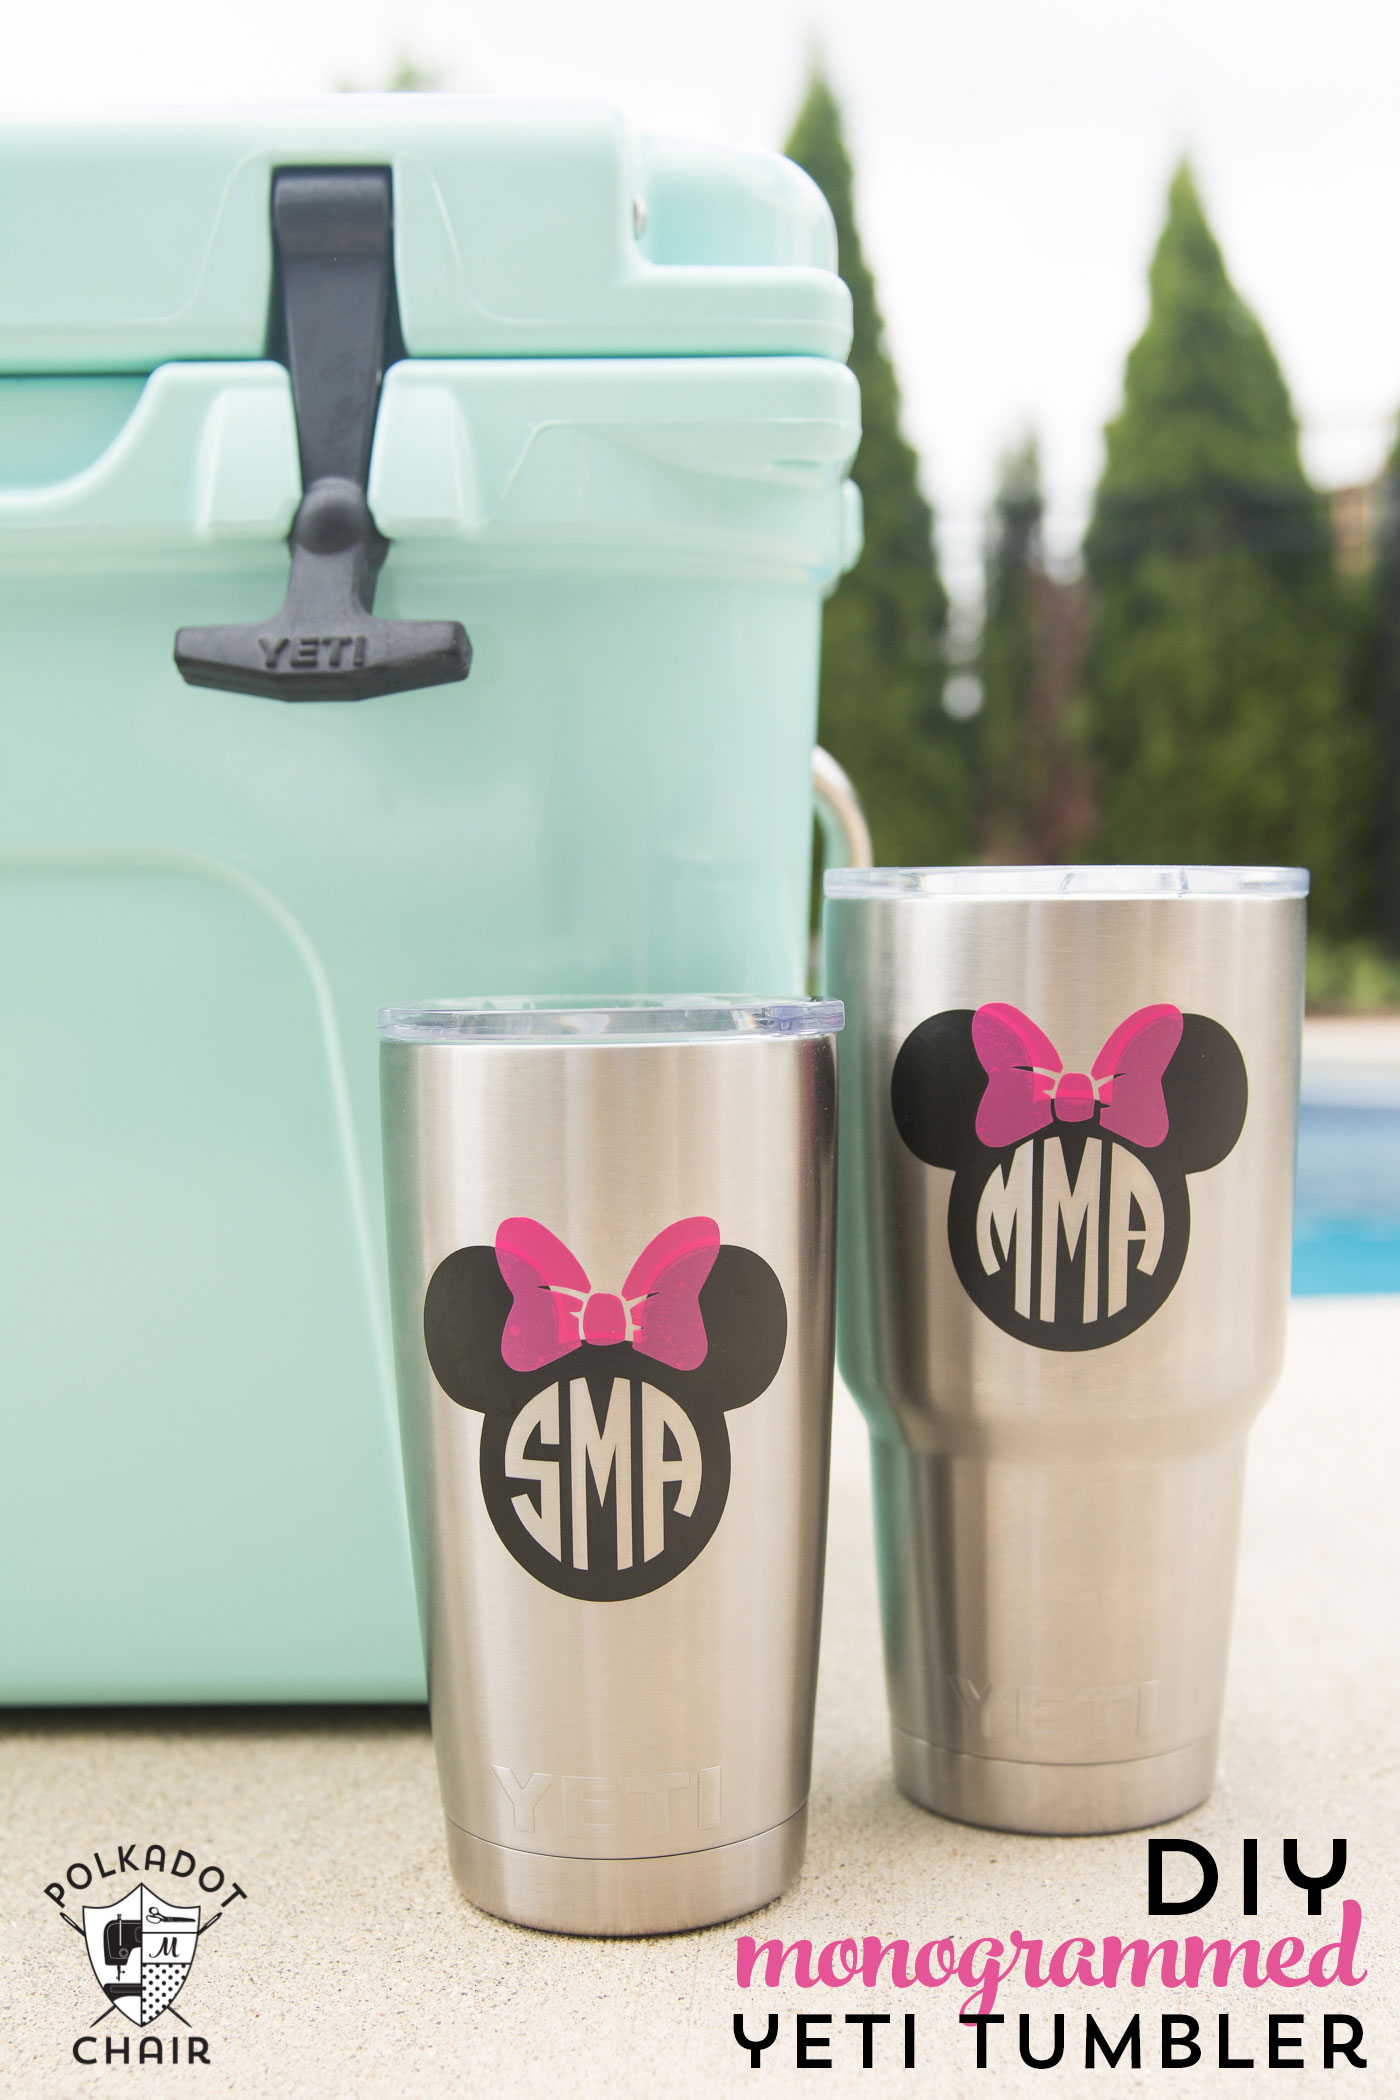 DIY stainless steel tumblers decorated with Disney images and monograms